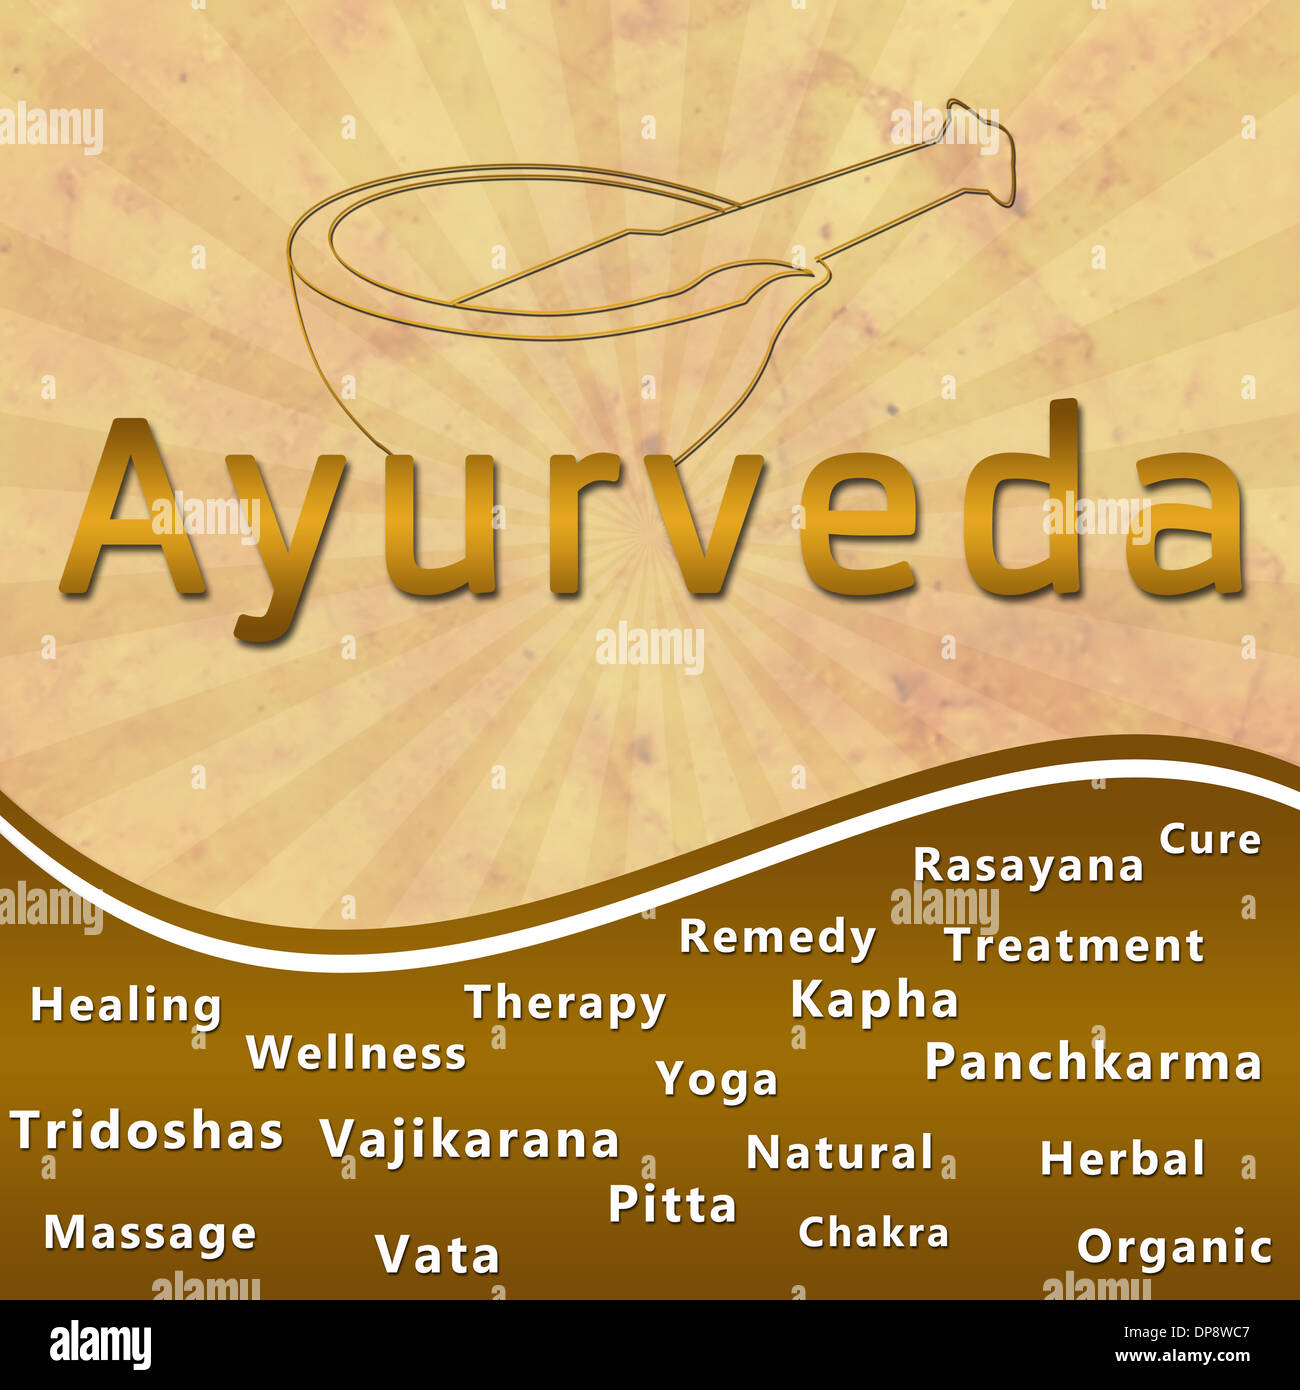 Ayurveda Banner Brown Grunge High Resolution Stock Photography And Images Alamy